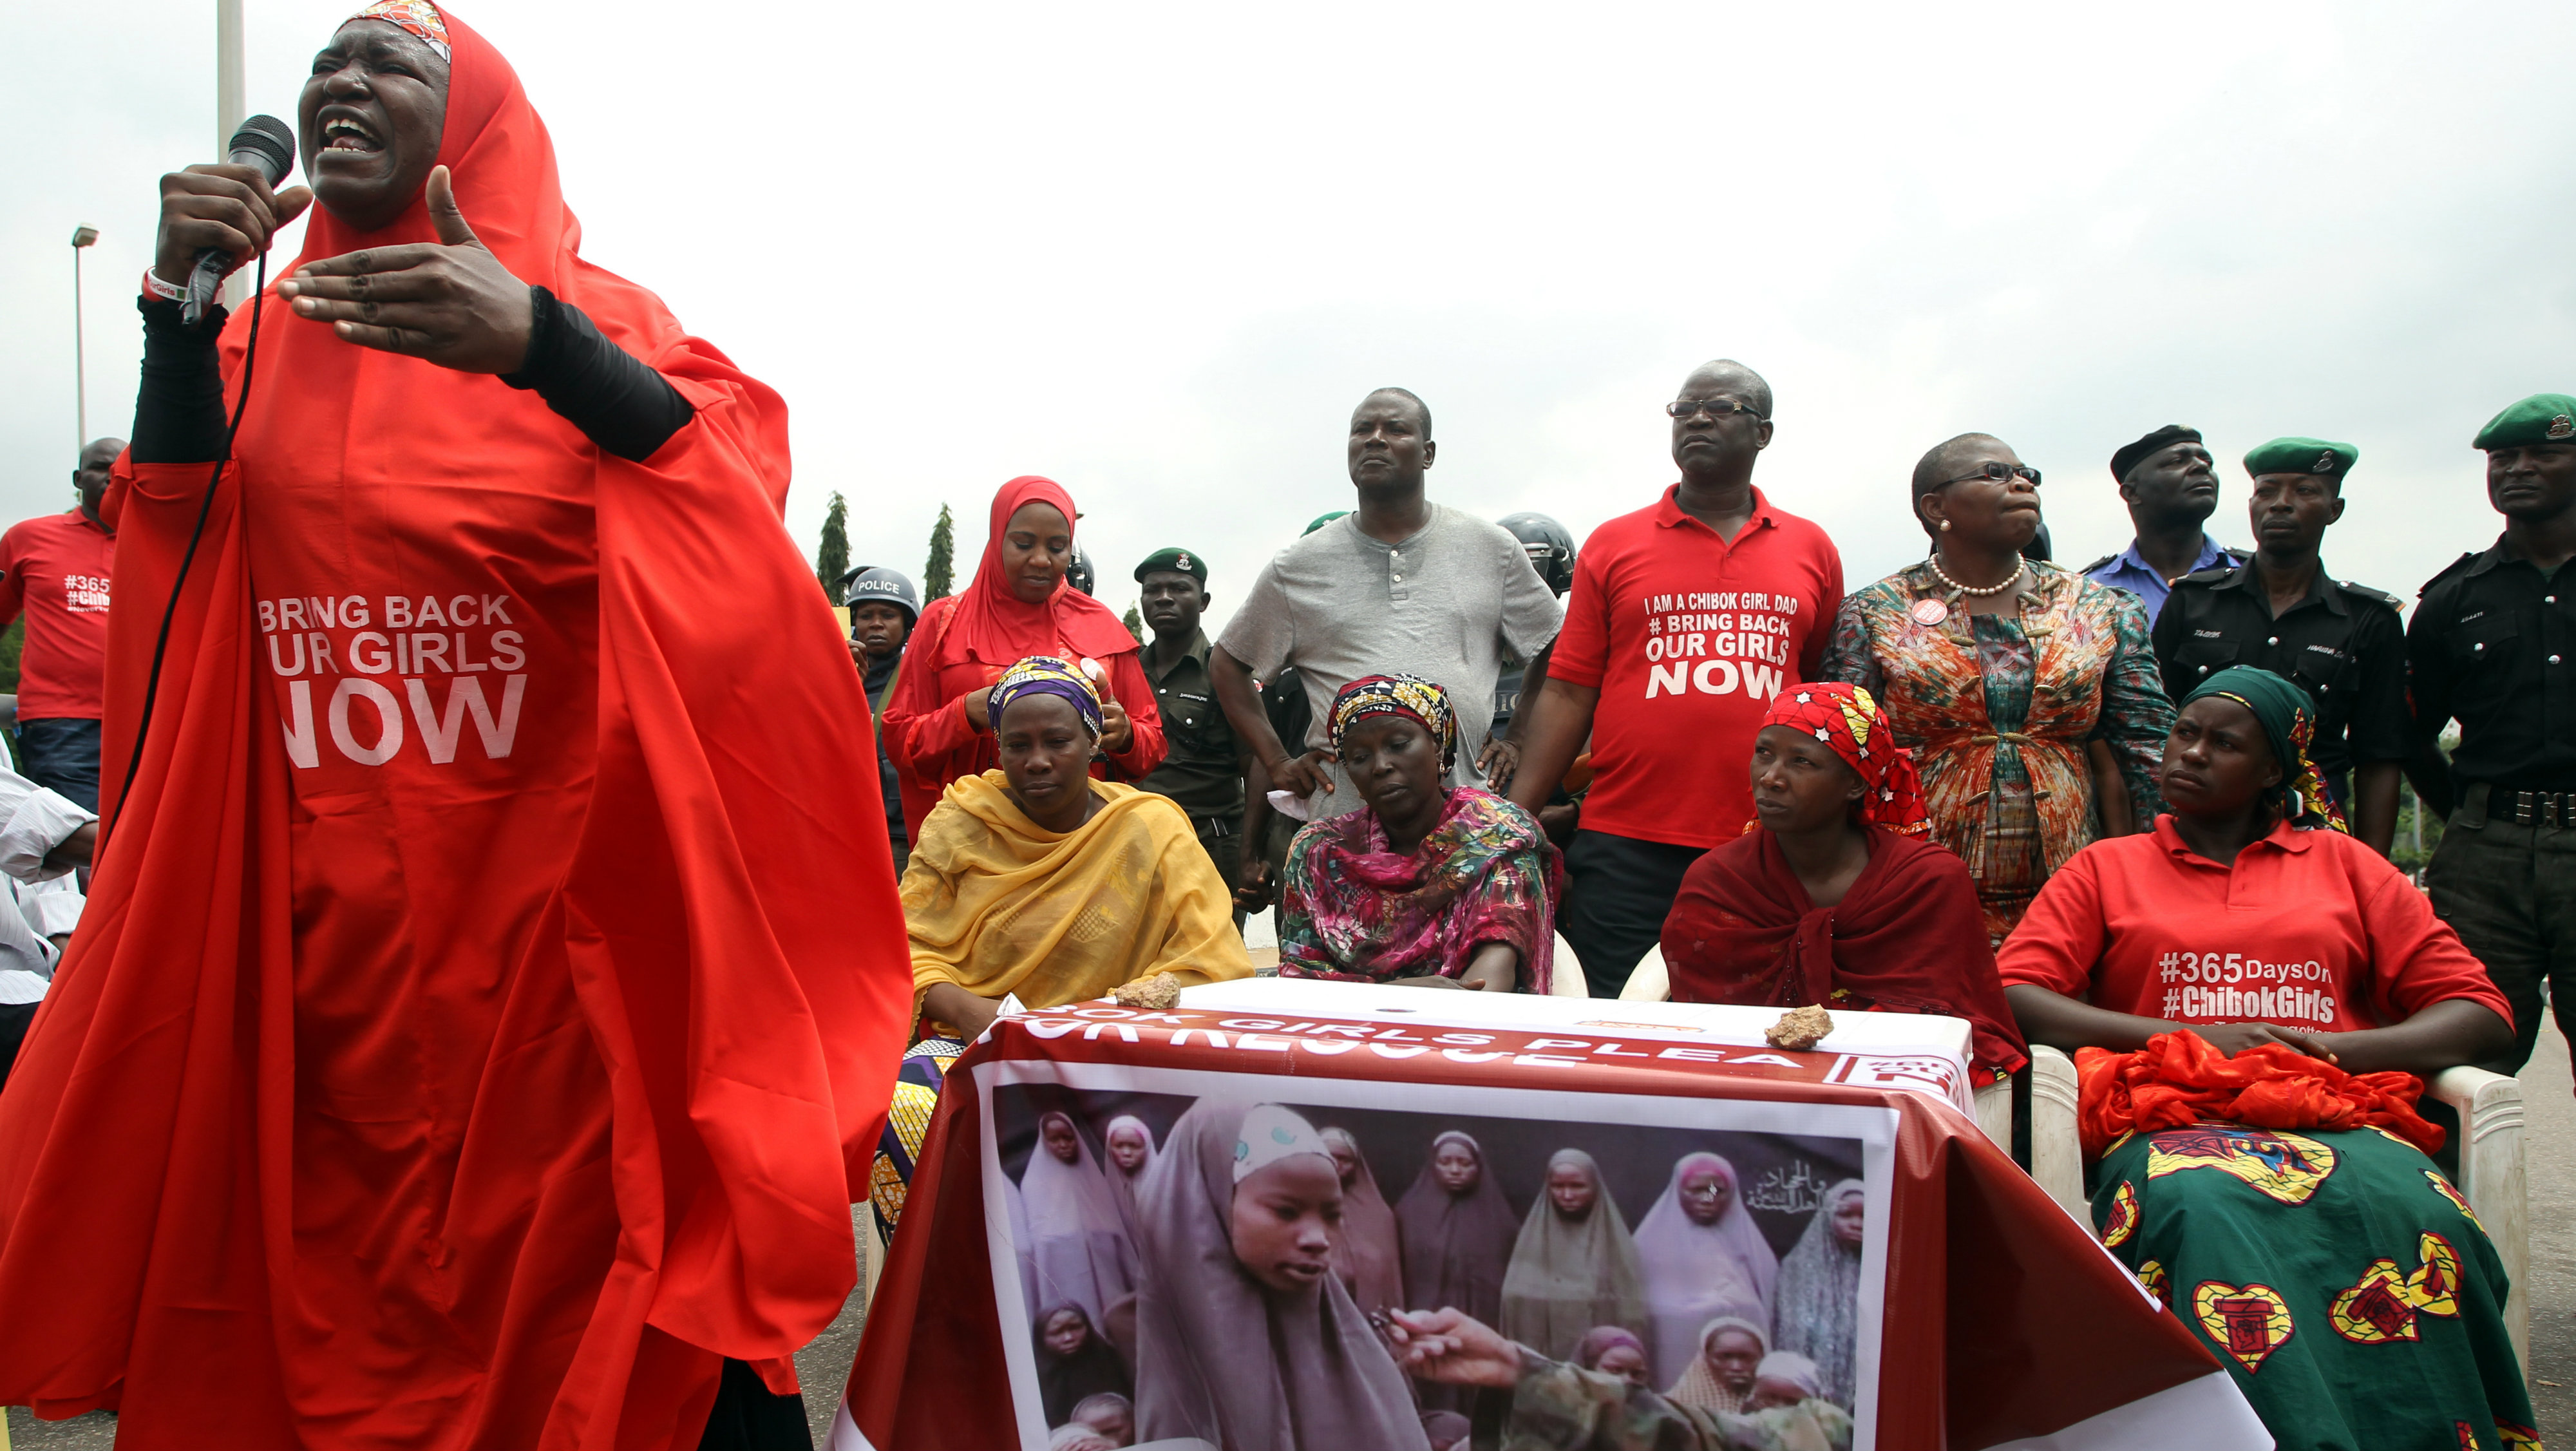 #Bring Back Our Girls (BBOG) campaigners and parents of abducted Chibok girls denied access by police to see President Muhammadu Buhari take part in a rally in Abuja, Nigeria, August 25, 2016.